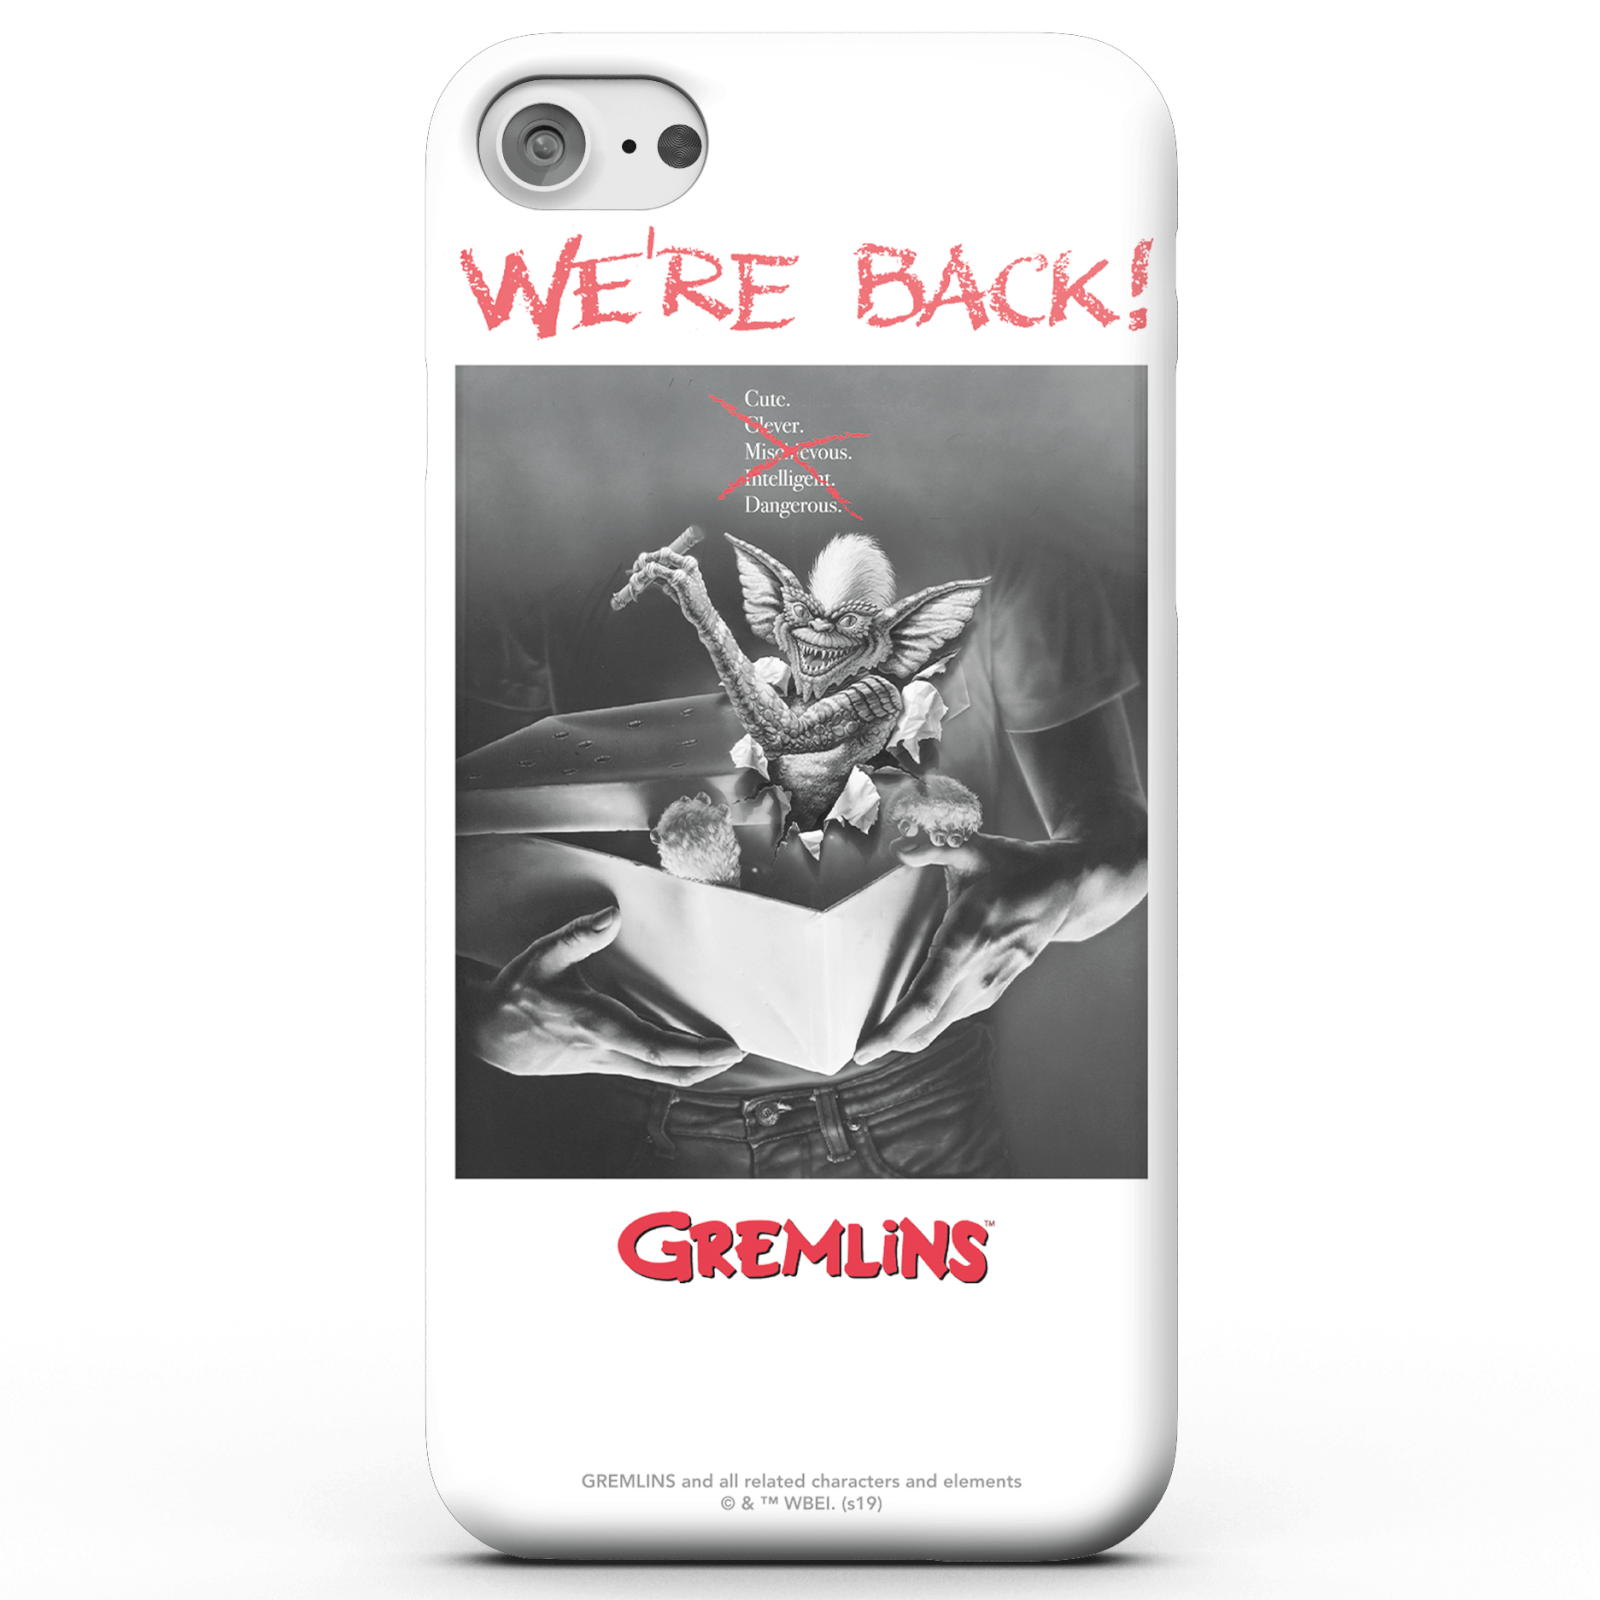 Gremlins Invasion Phone Case for iPhone and Android - Samsung S8 - Tough Case - Gloss